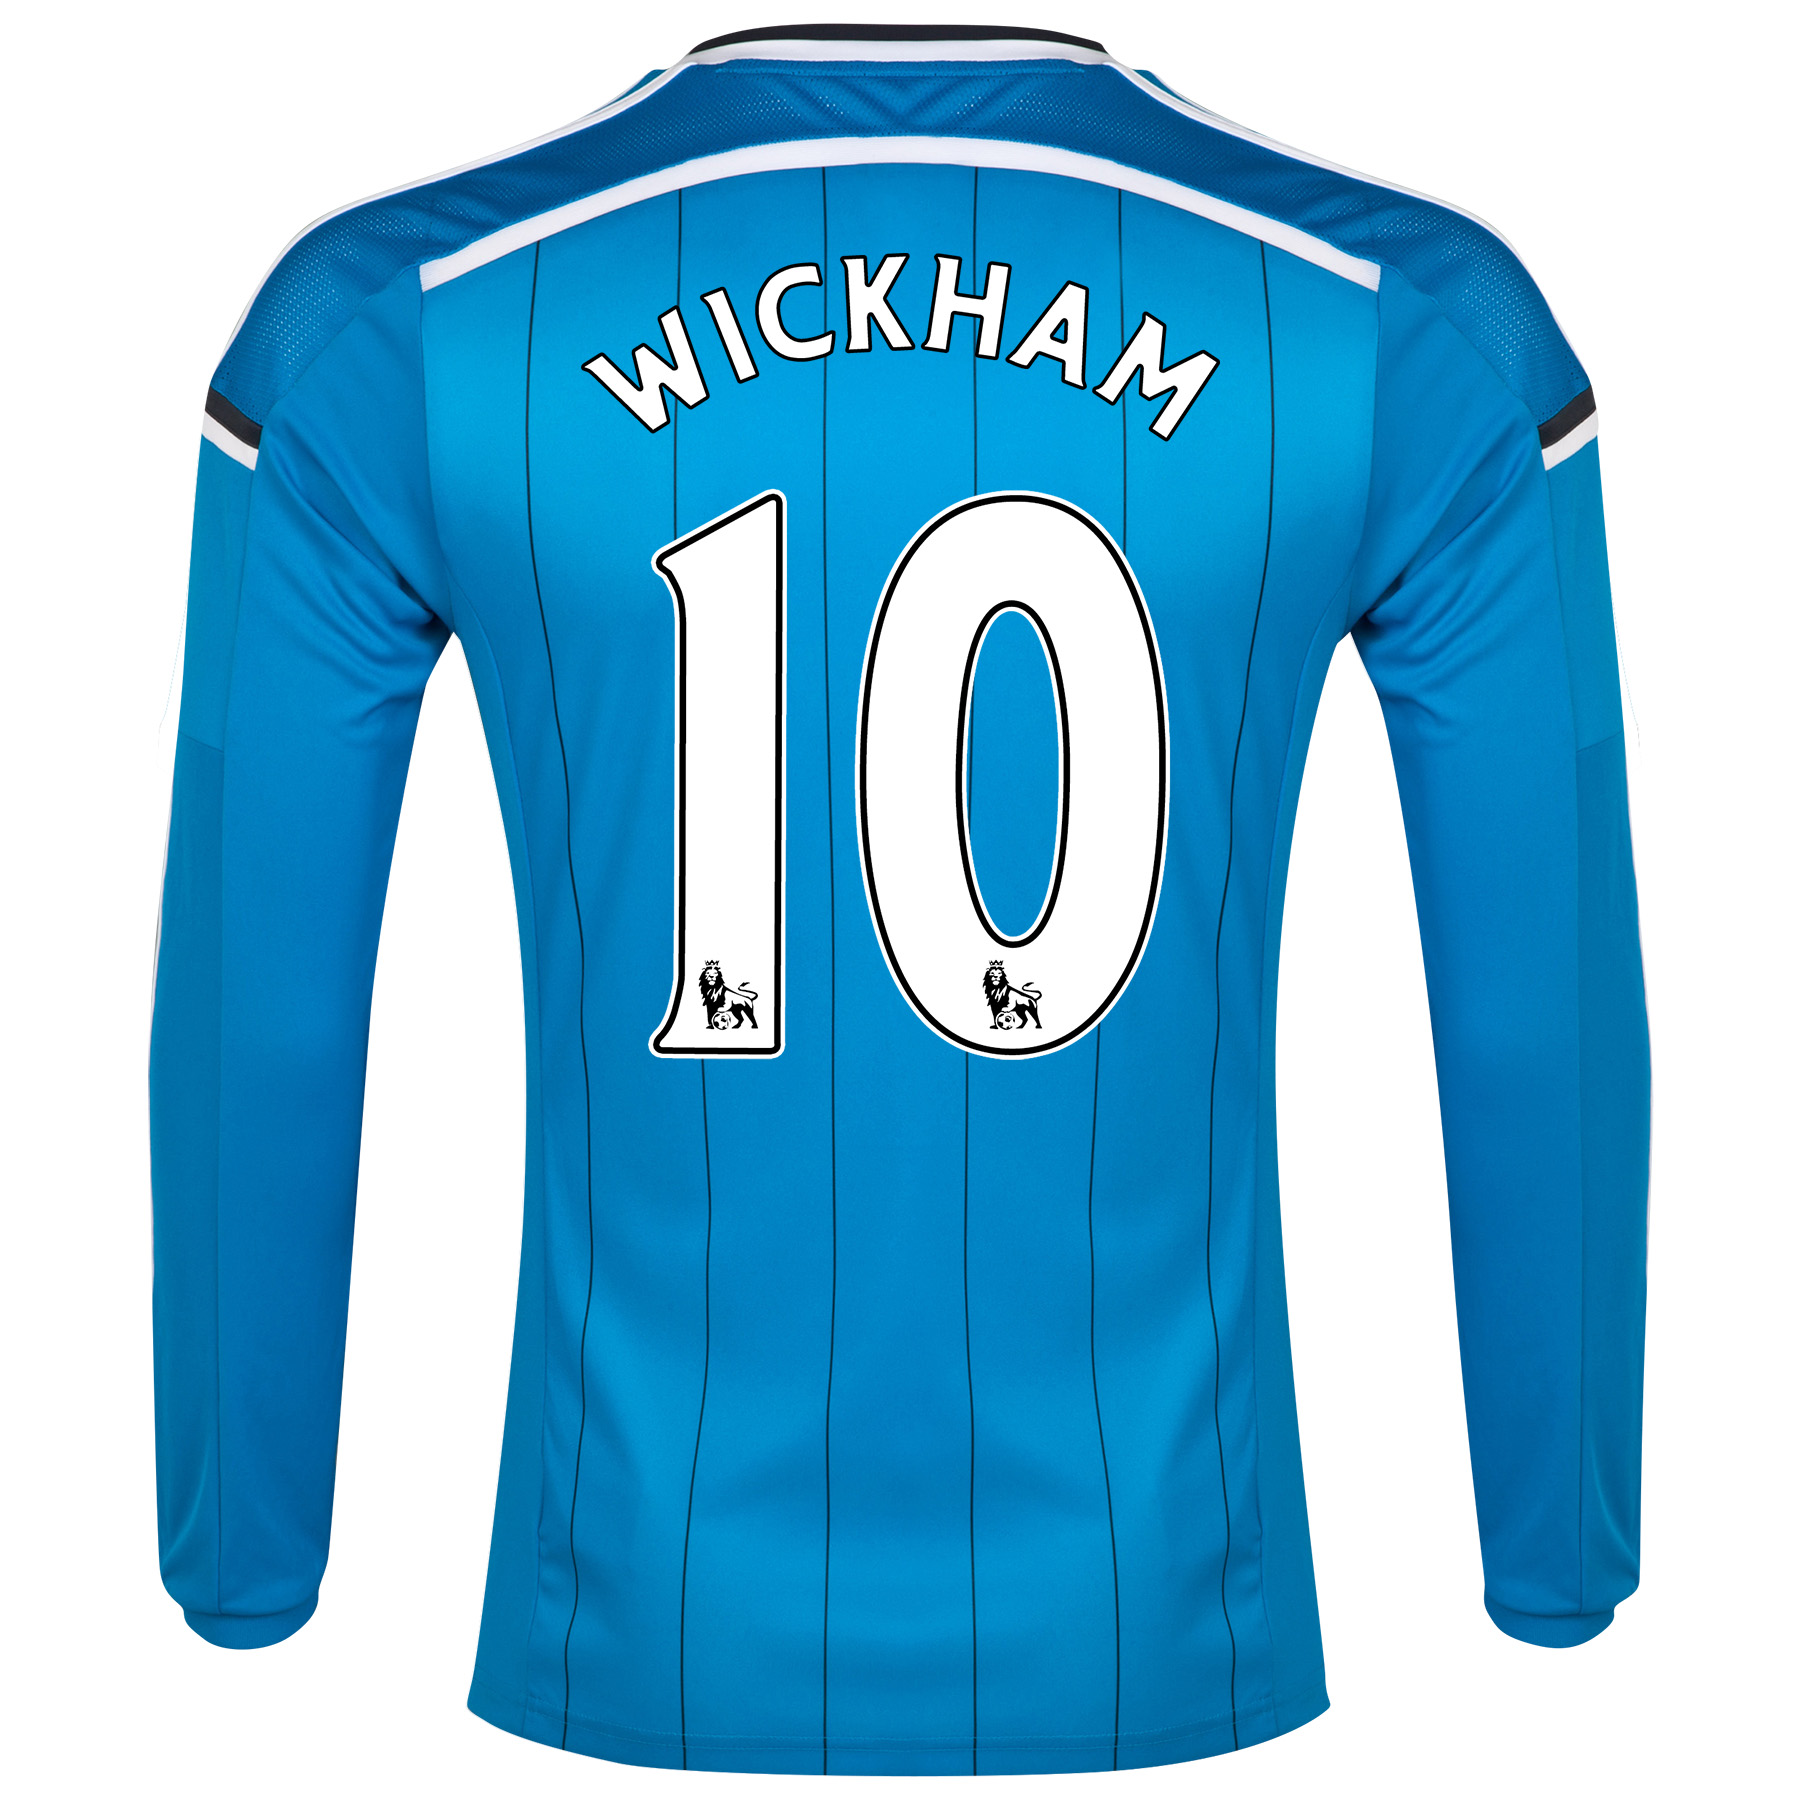 Sunderland Away Shirt 2014/15 - Long Sleeved Lt Blue with Wickham 10 printing